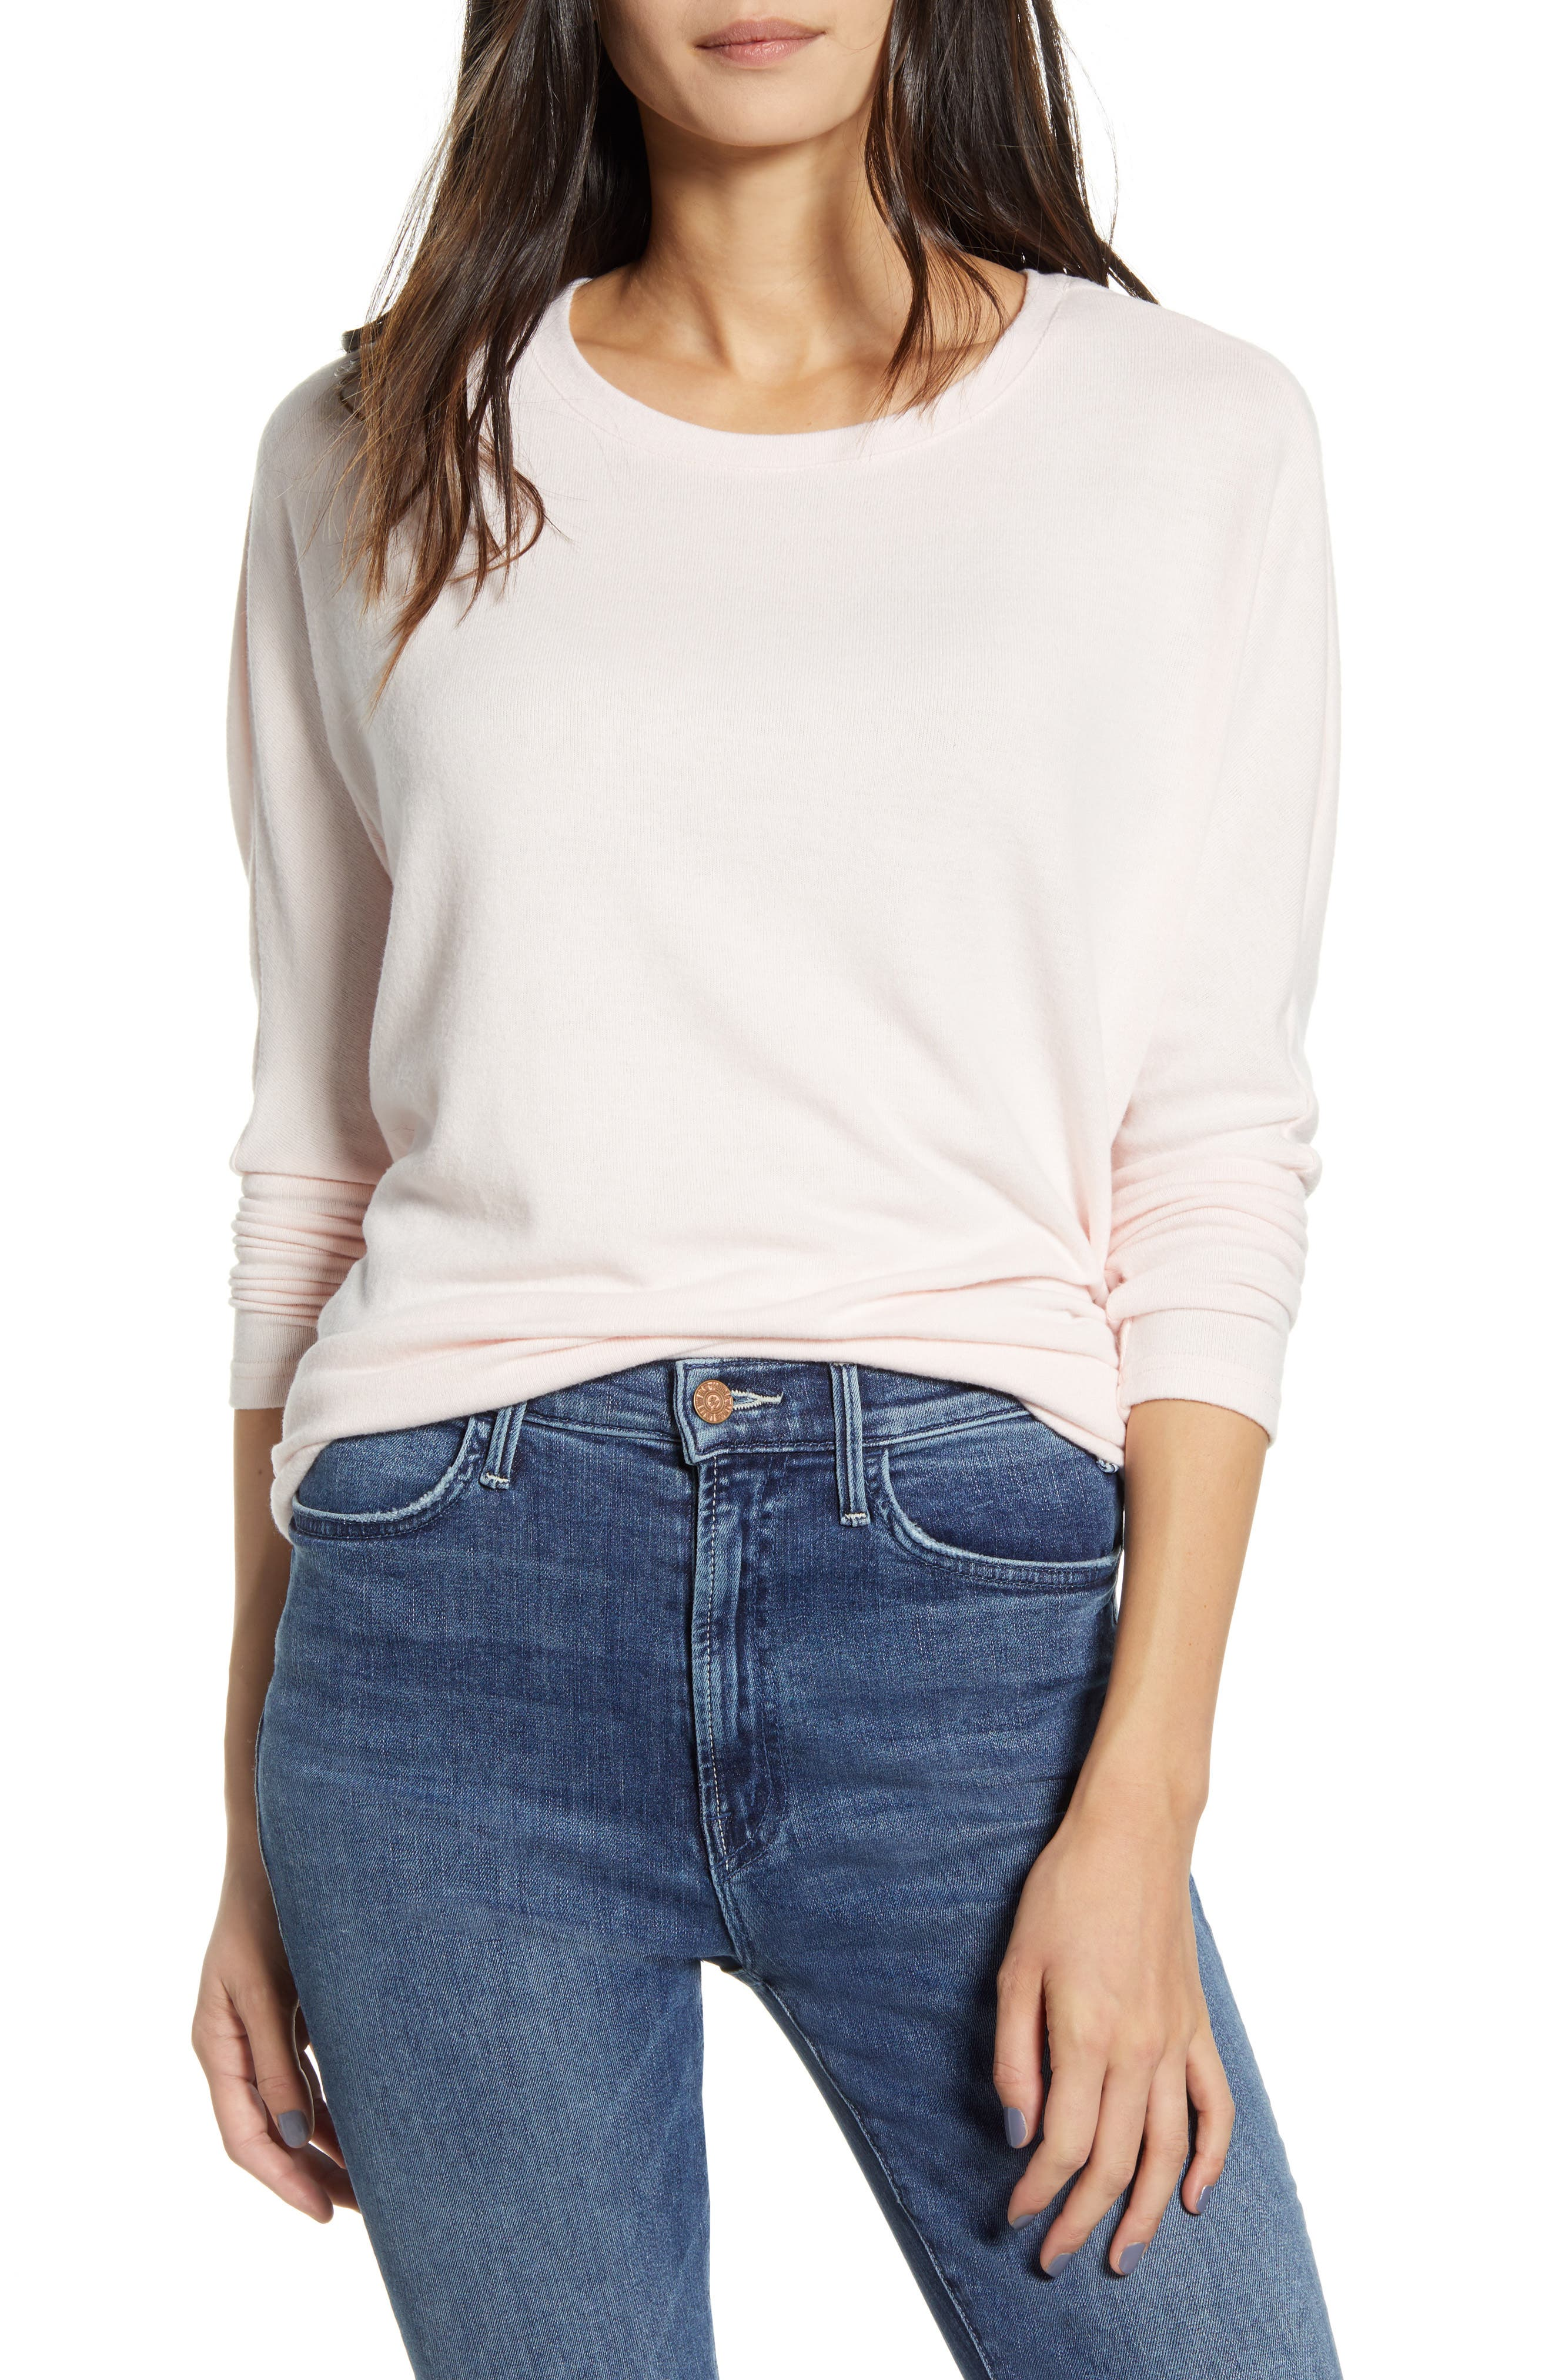 Image of: Cupcakes And Cashmere Ivery Emily S Favorite Sweatshirt Nordstrom Rack